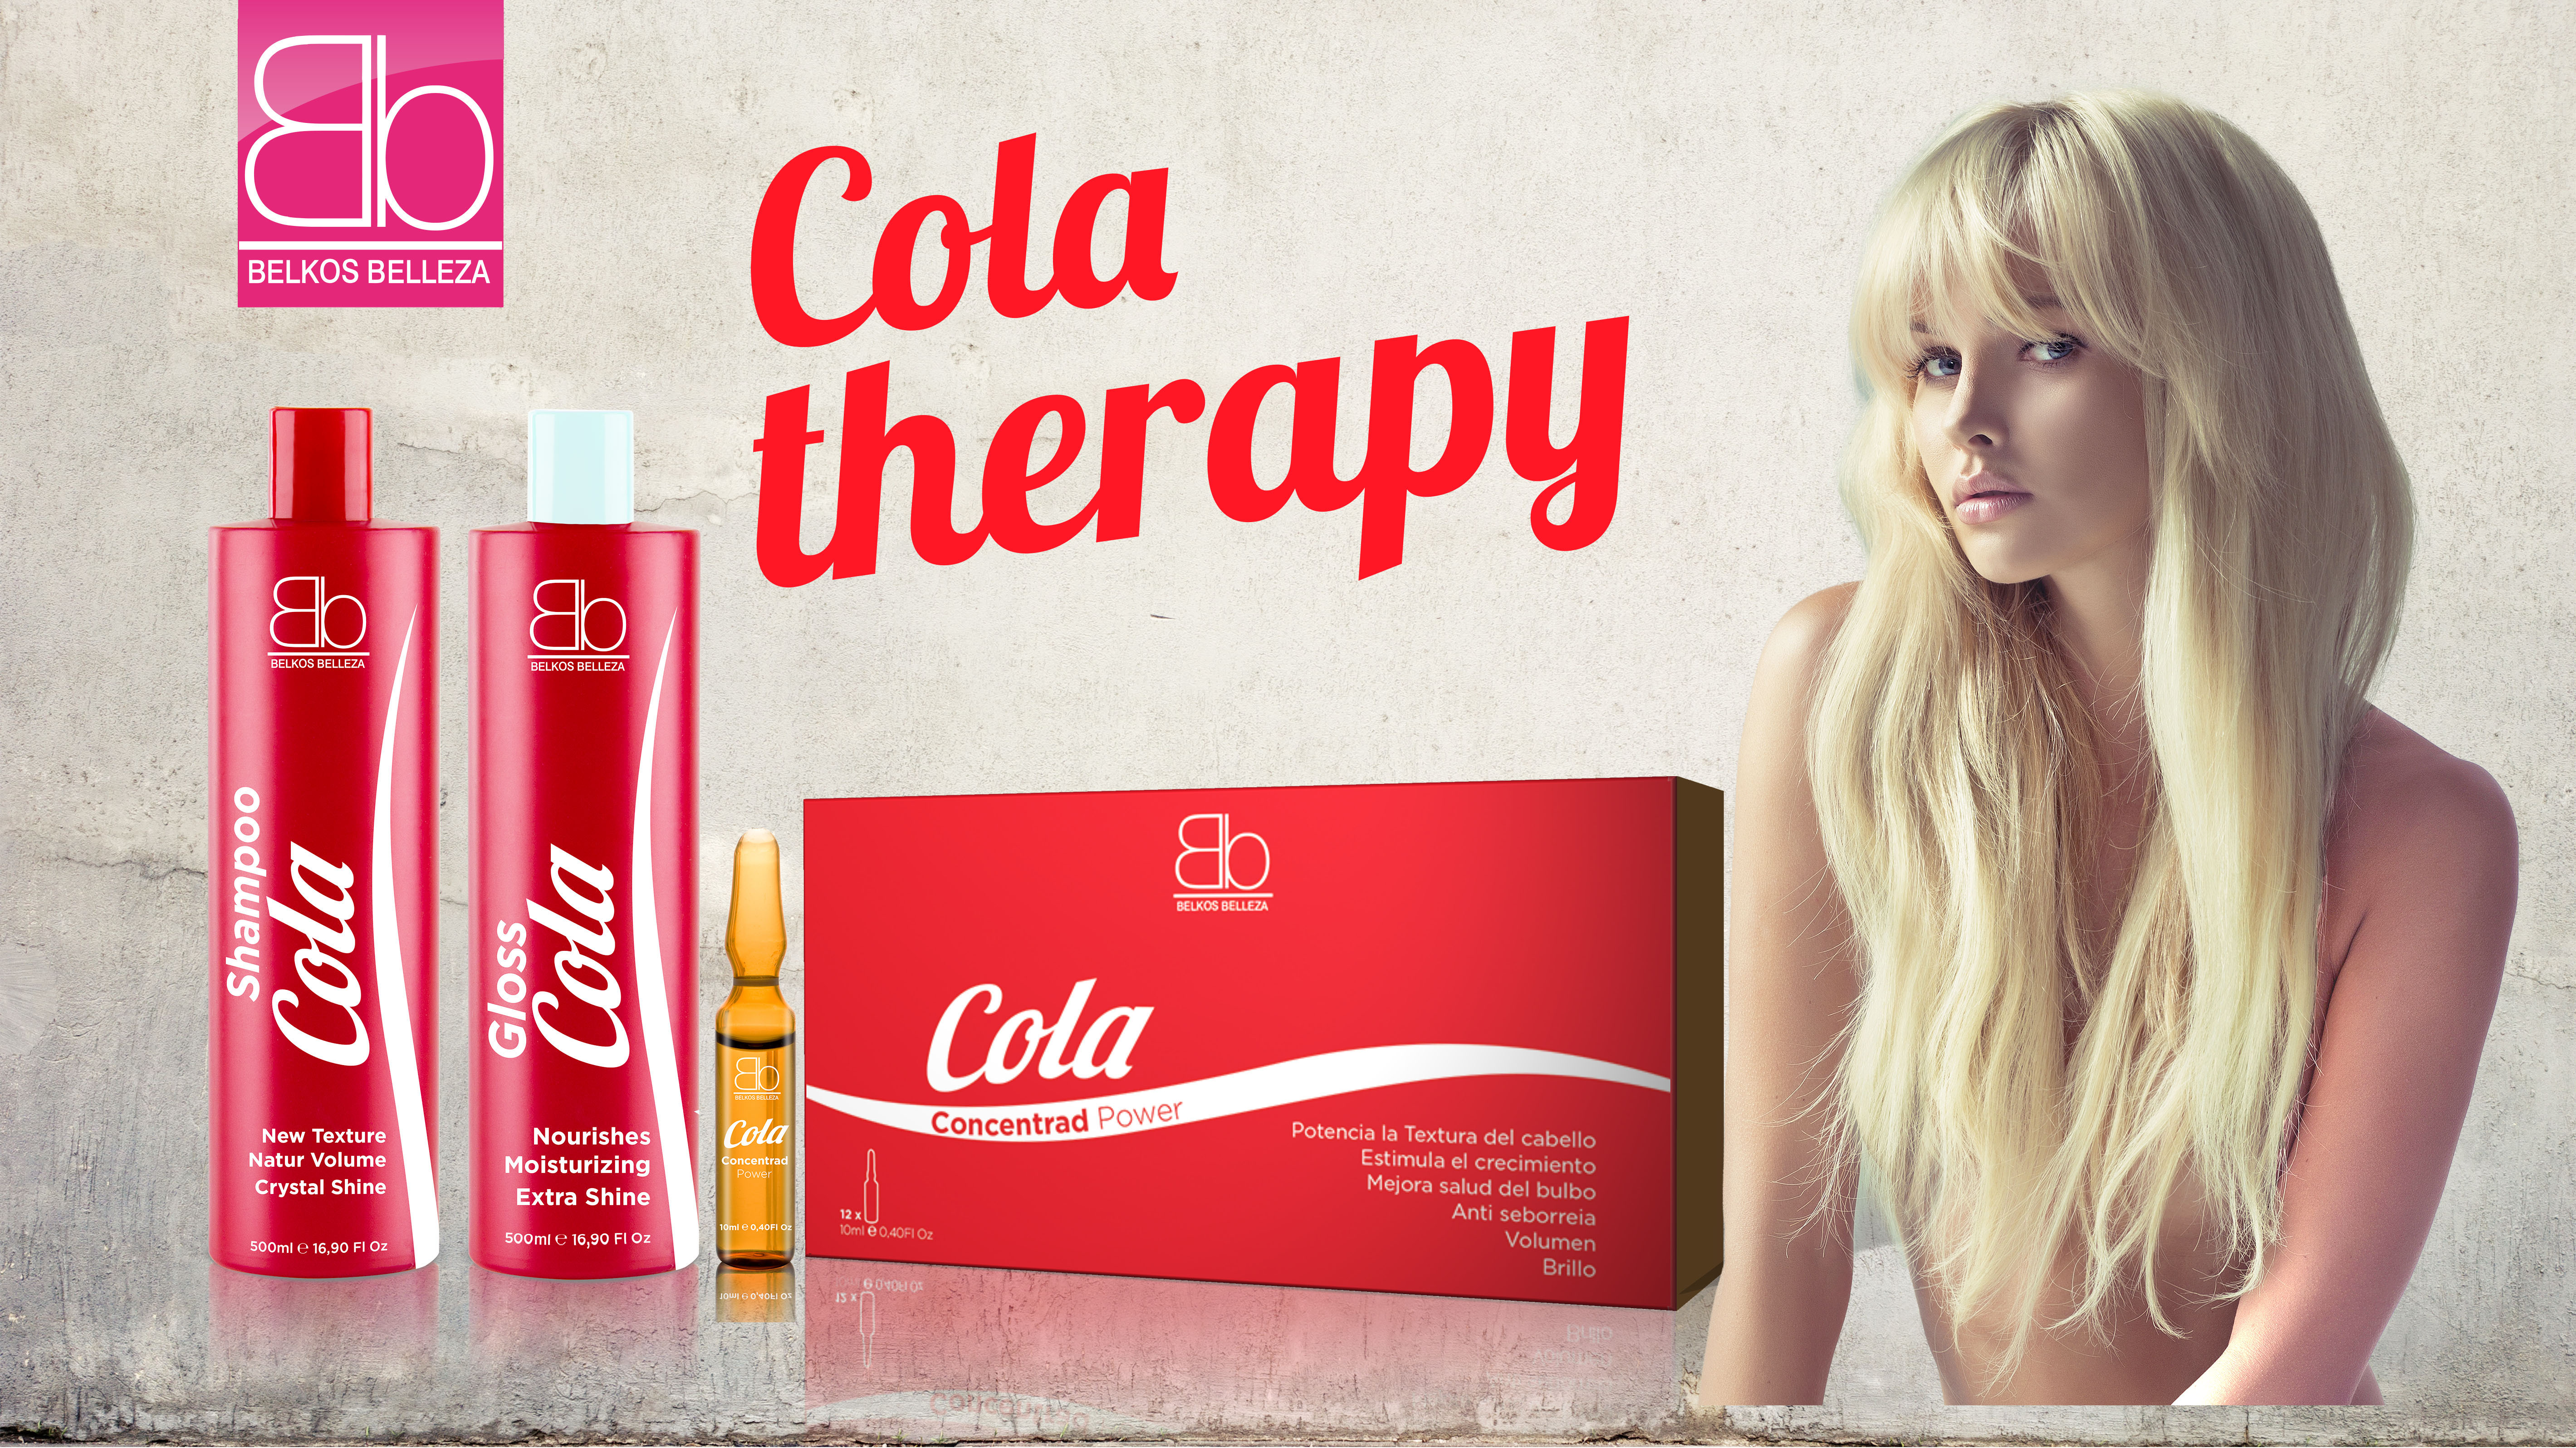 cola_therapy.jpg